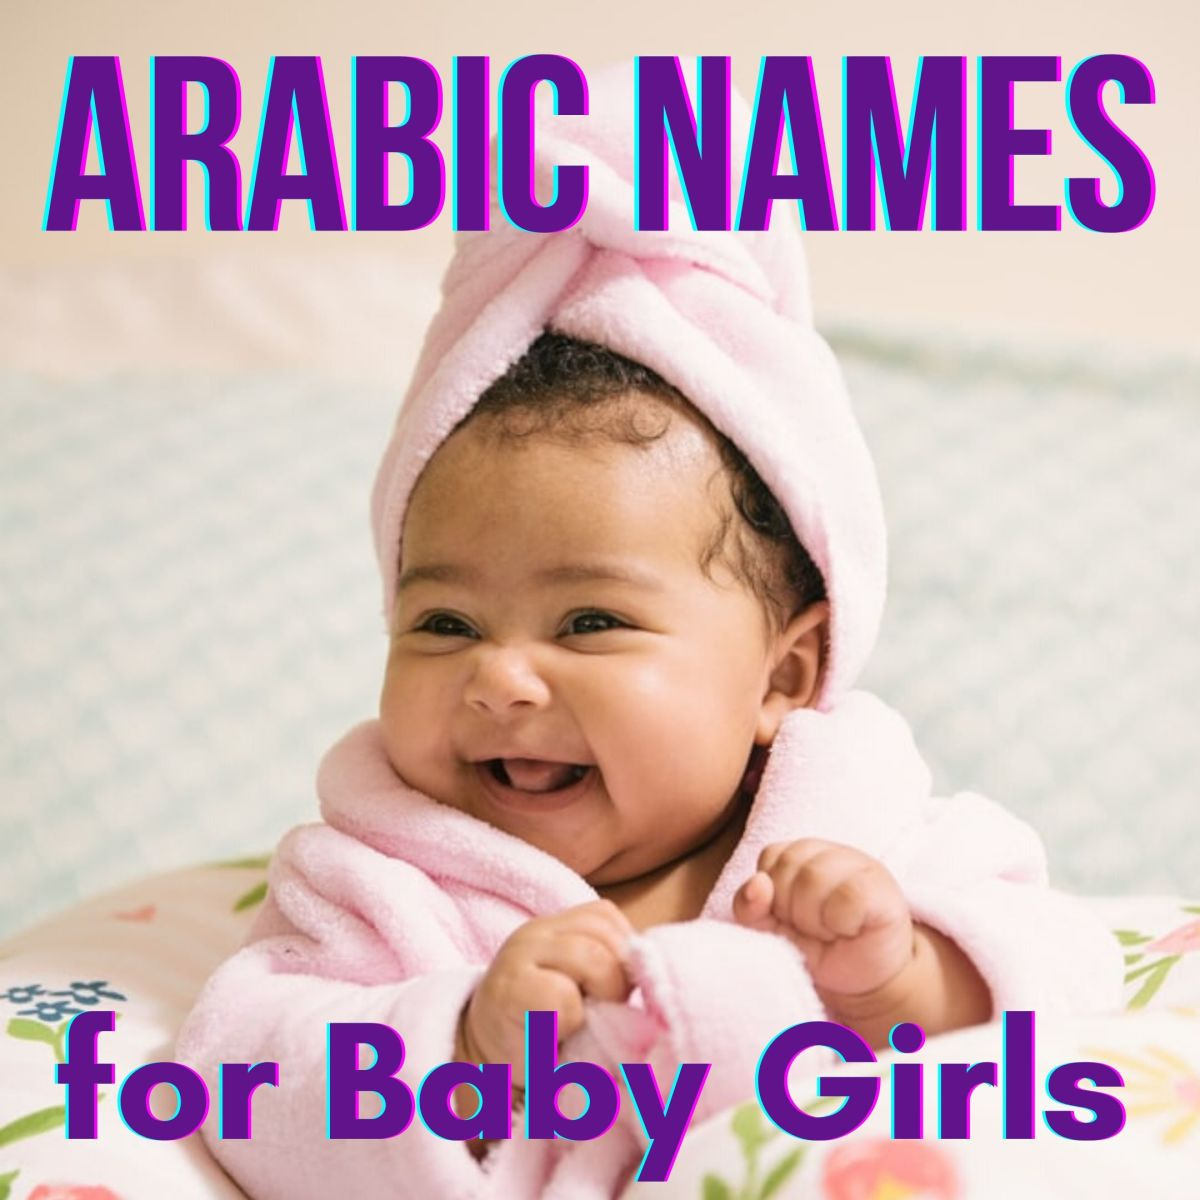 Here's a list to help you choose an Arabic name for your baby girl.